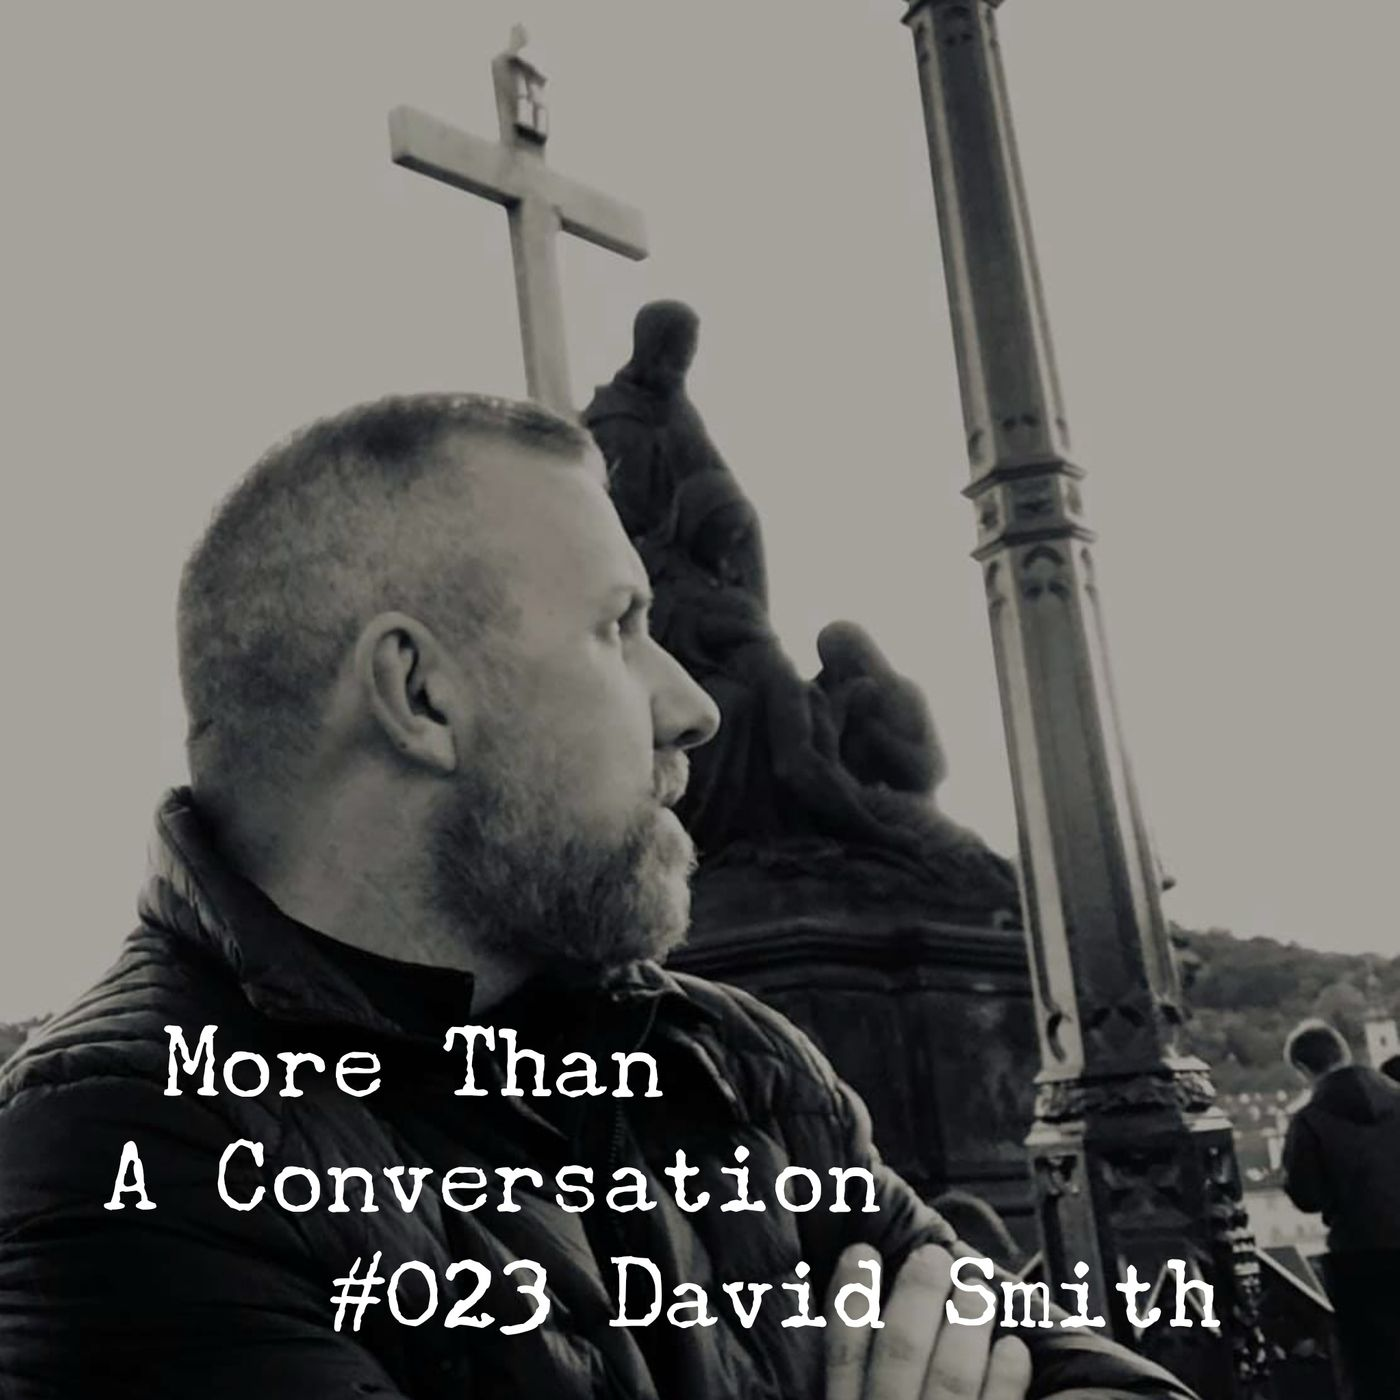 #023 David Smith, Pastor of Oak Park Church, Mobile AL